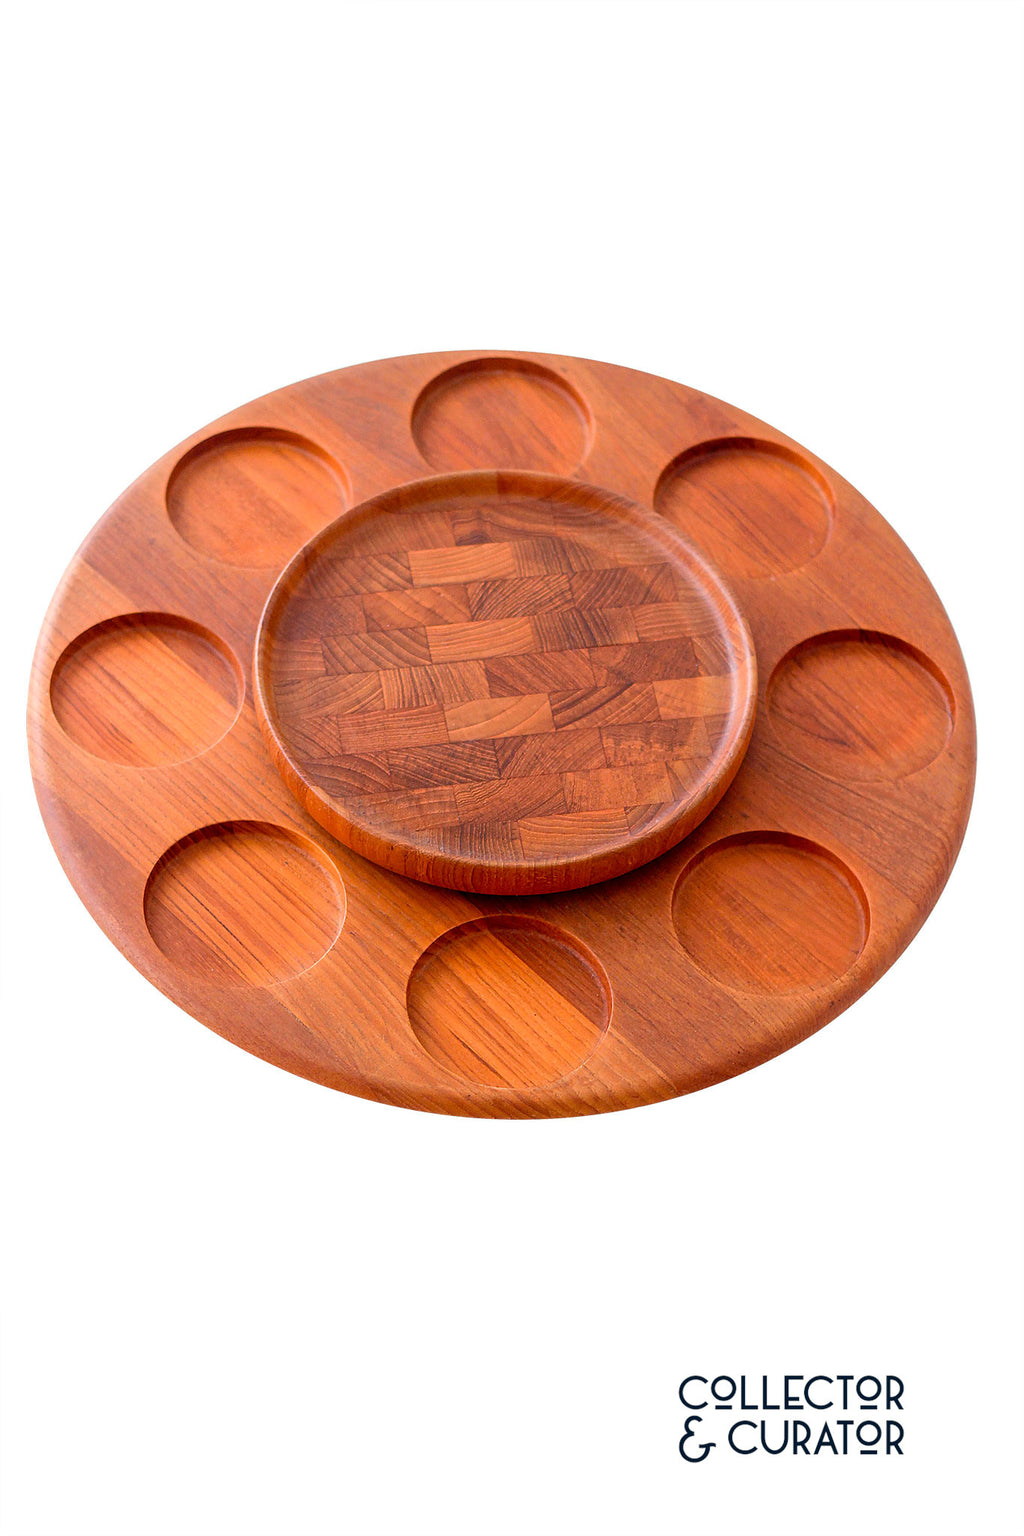 Digsmed Teak Lazy Susan 310 Round Glass Dishes - Collector & Curator